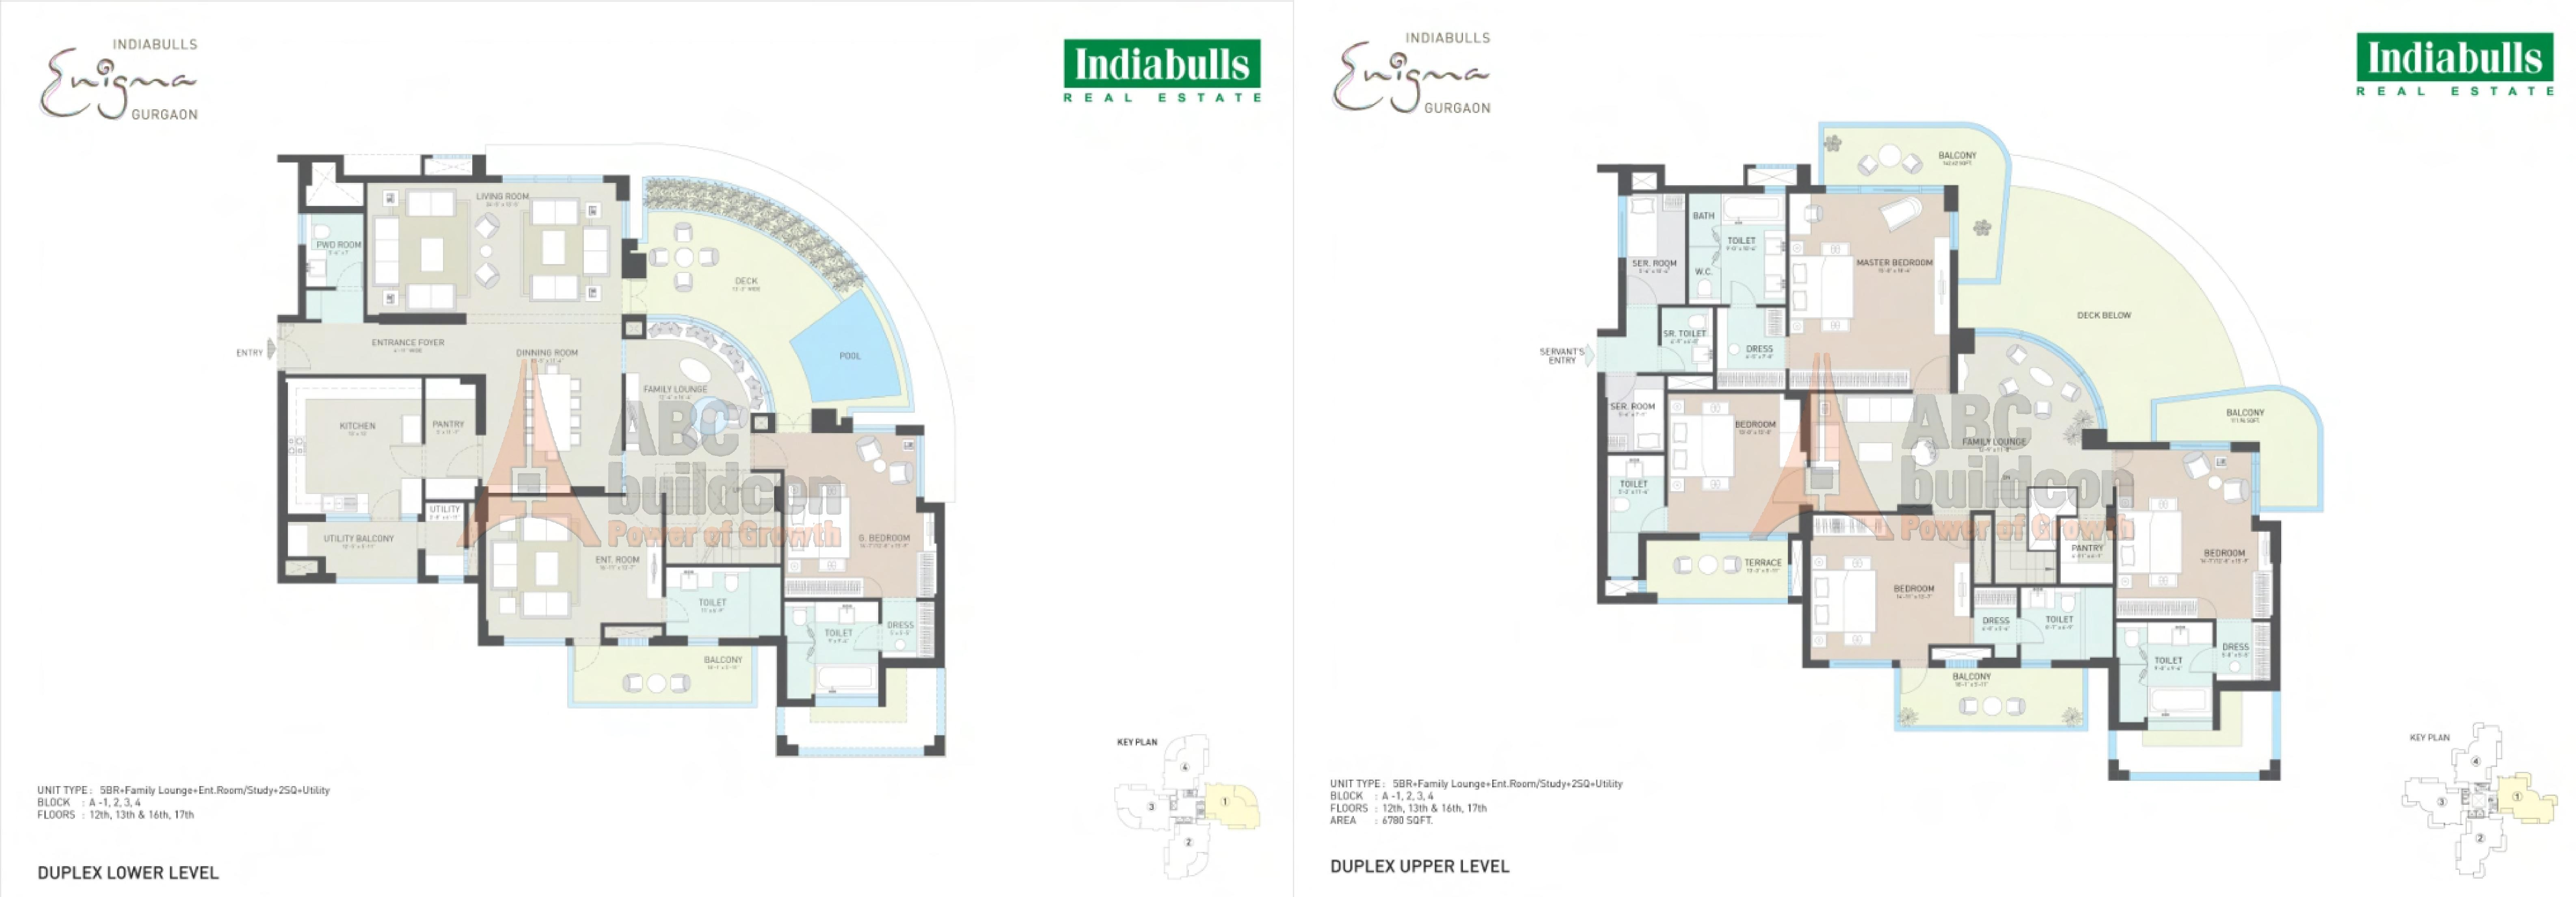 100 duplex house plans in gurgaon central park ii 5 5 bhk duplex floor plan